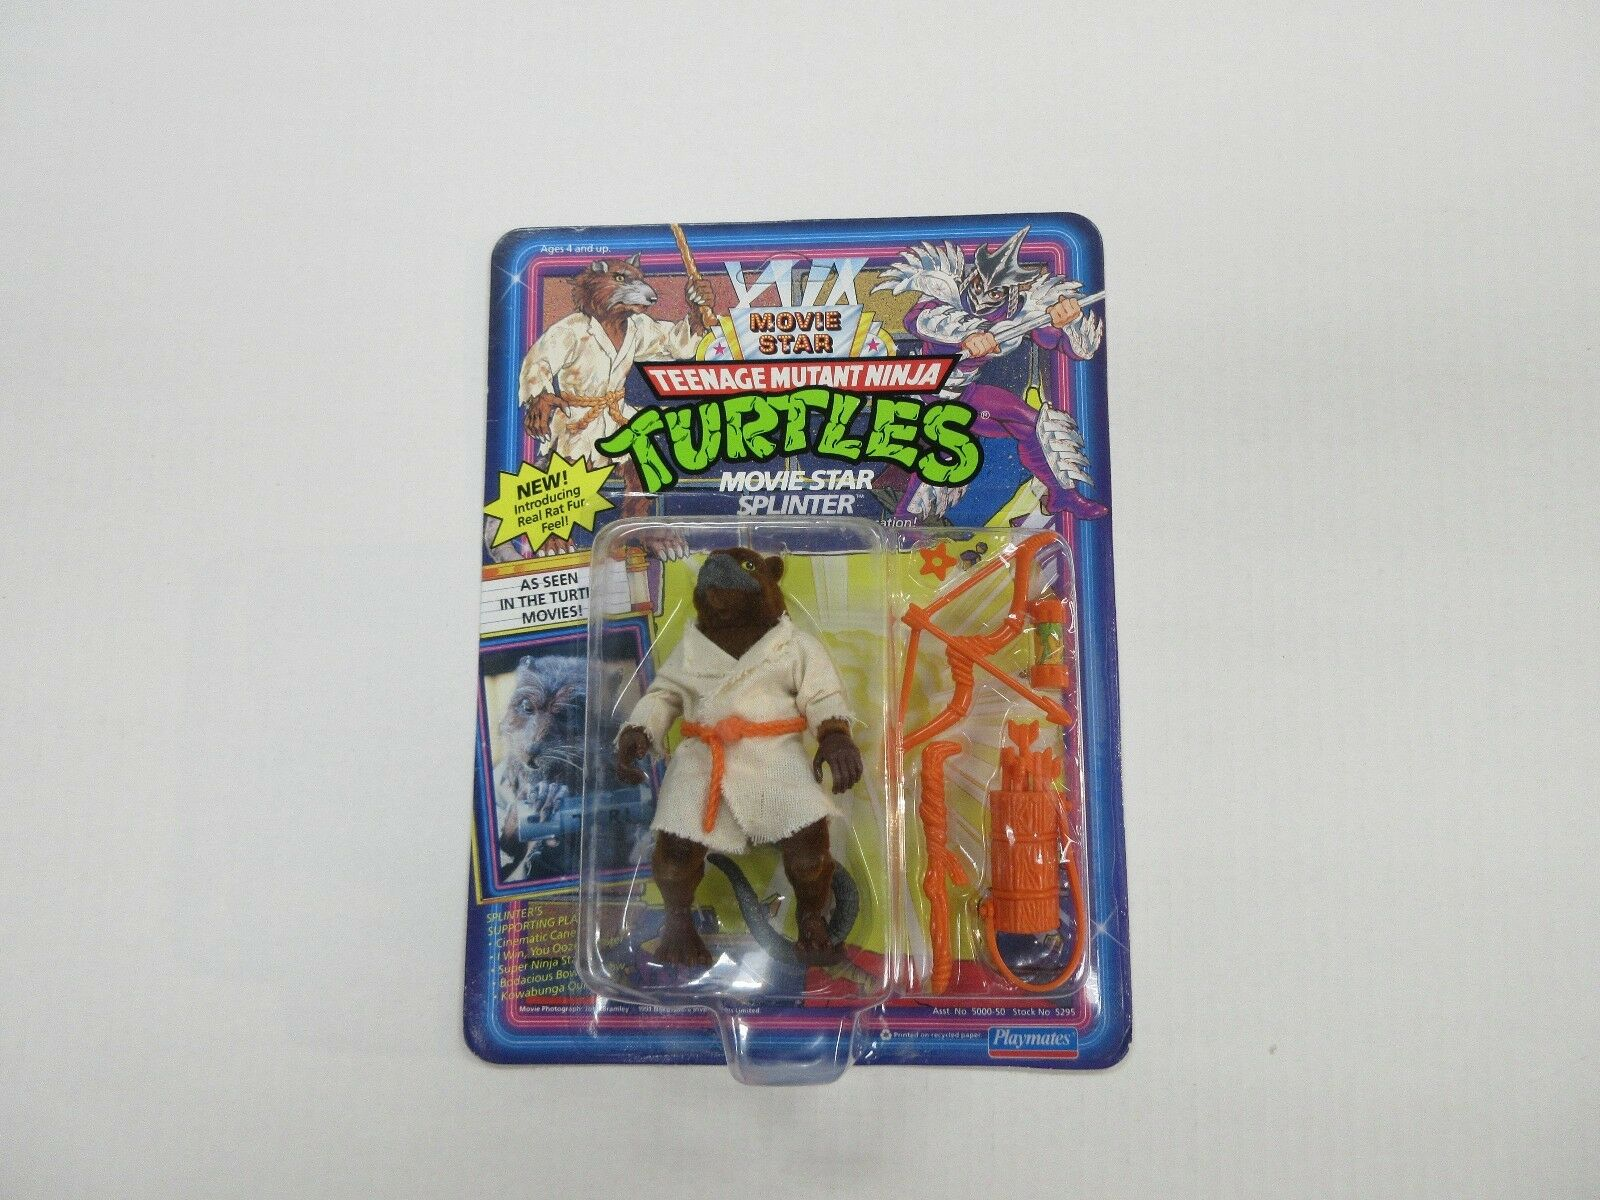 1991 TMNT NINJA TURTLES MOVIE STAR SPLINTER FIGURE UNPUNCHED FACTORY SEALED